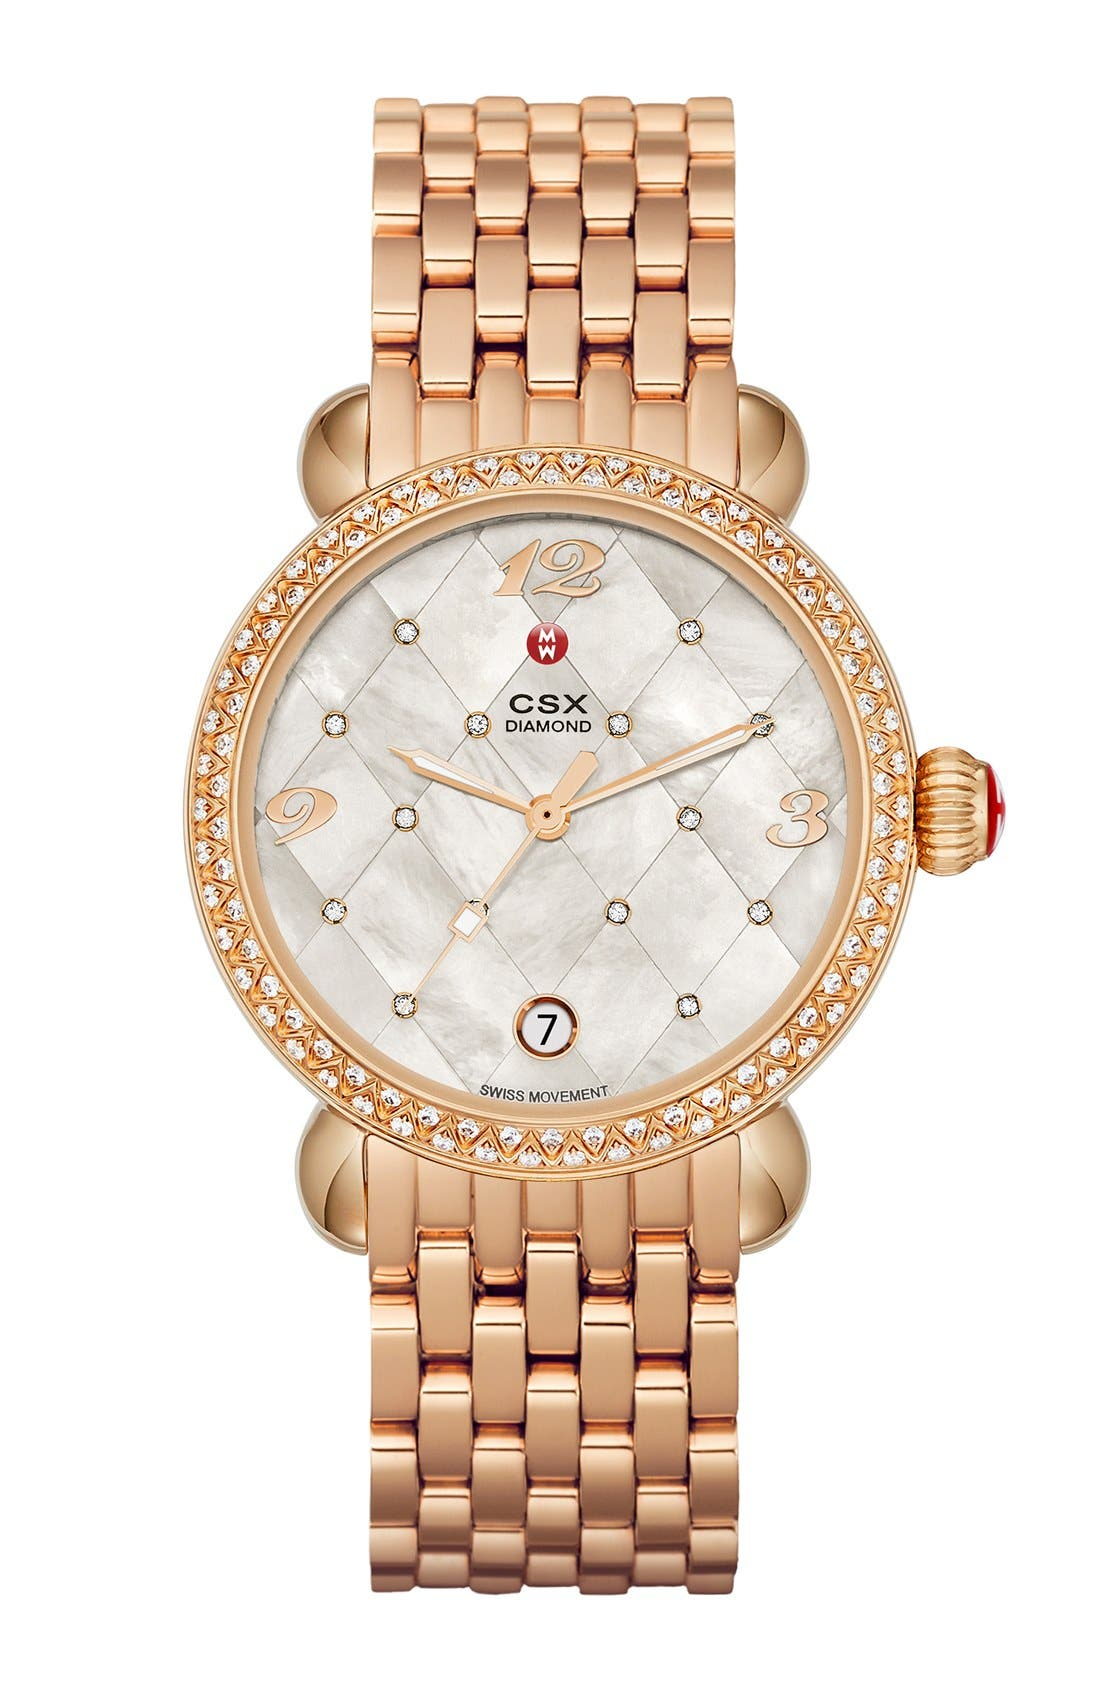 Alternate Image 2  - MICHELE 'CSX Quilted' Diamond Dial Watch Case, 36mm (Limited Edition)